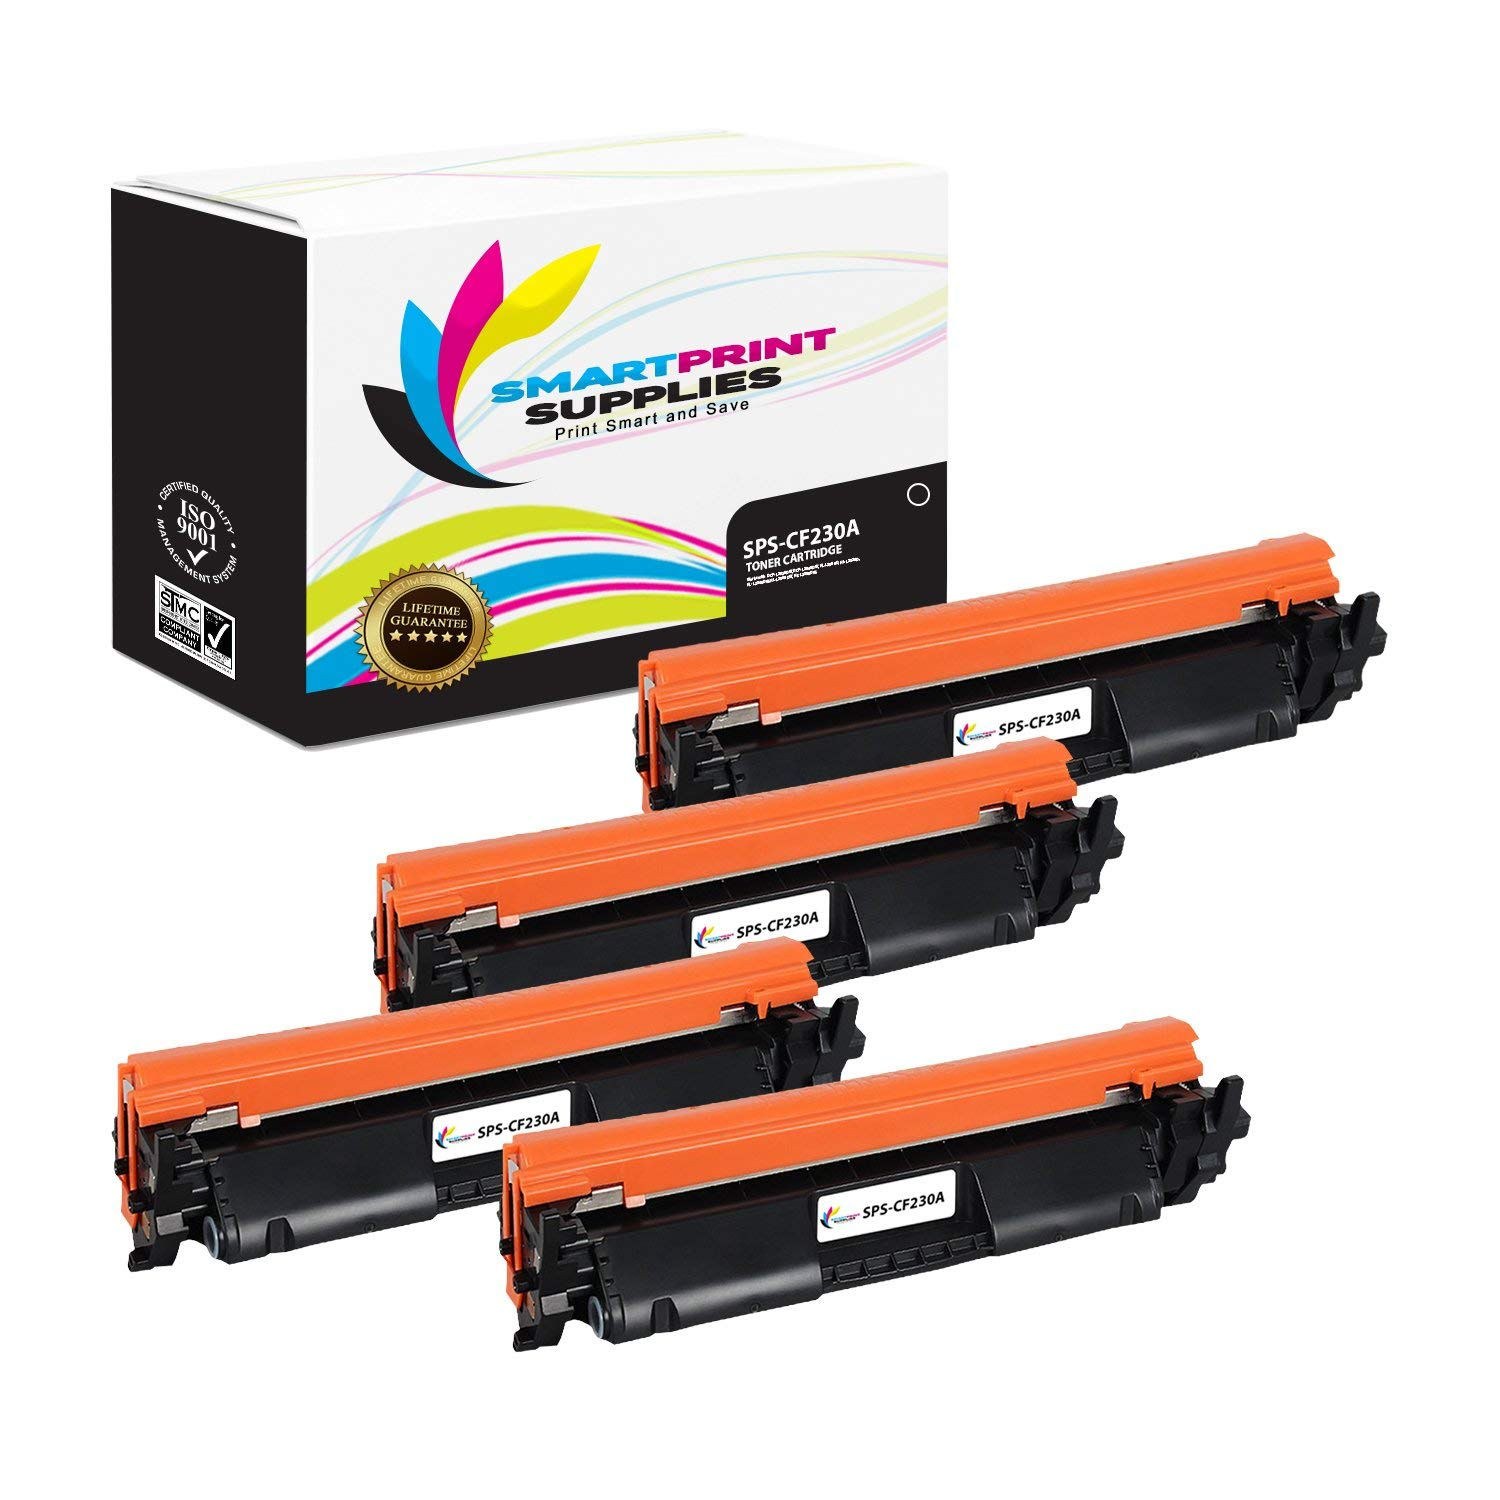 Smart Print Supplies CF230A 30A with CHIP Compatible Black Toner Cartridge Replacement for HP Laserjet Pro M203 MFP M227 Series Laser Printers (1,600 Pages) - 4 Pack